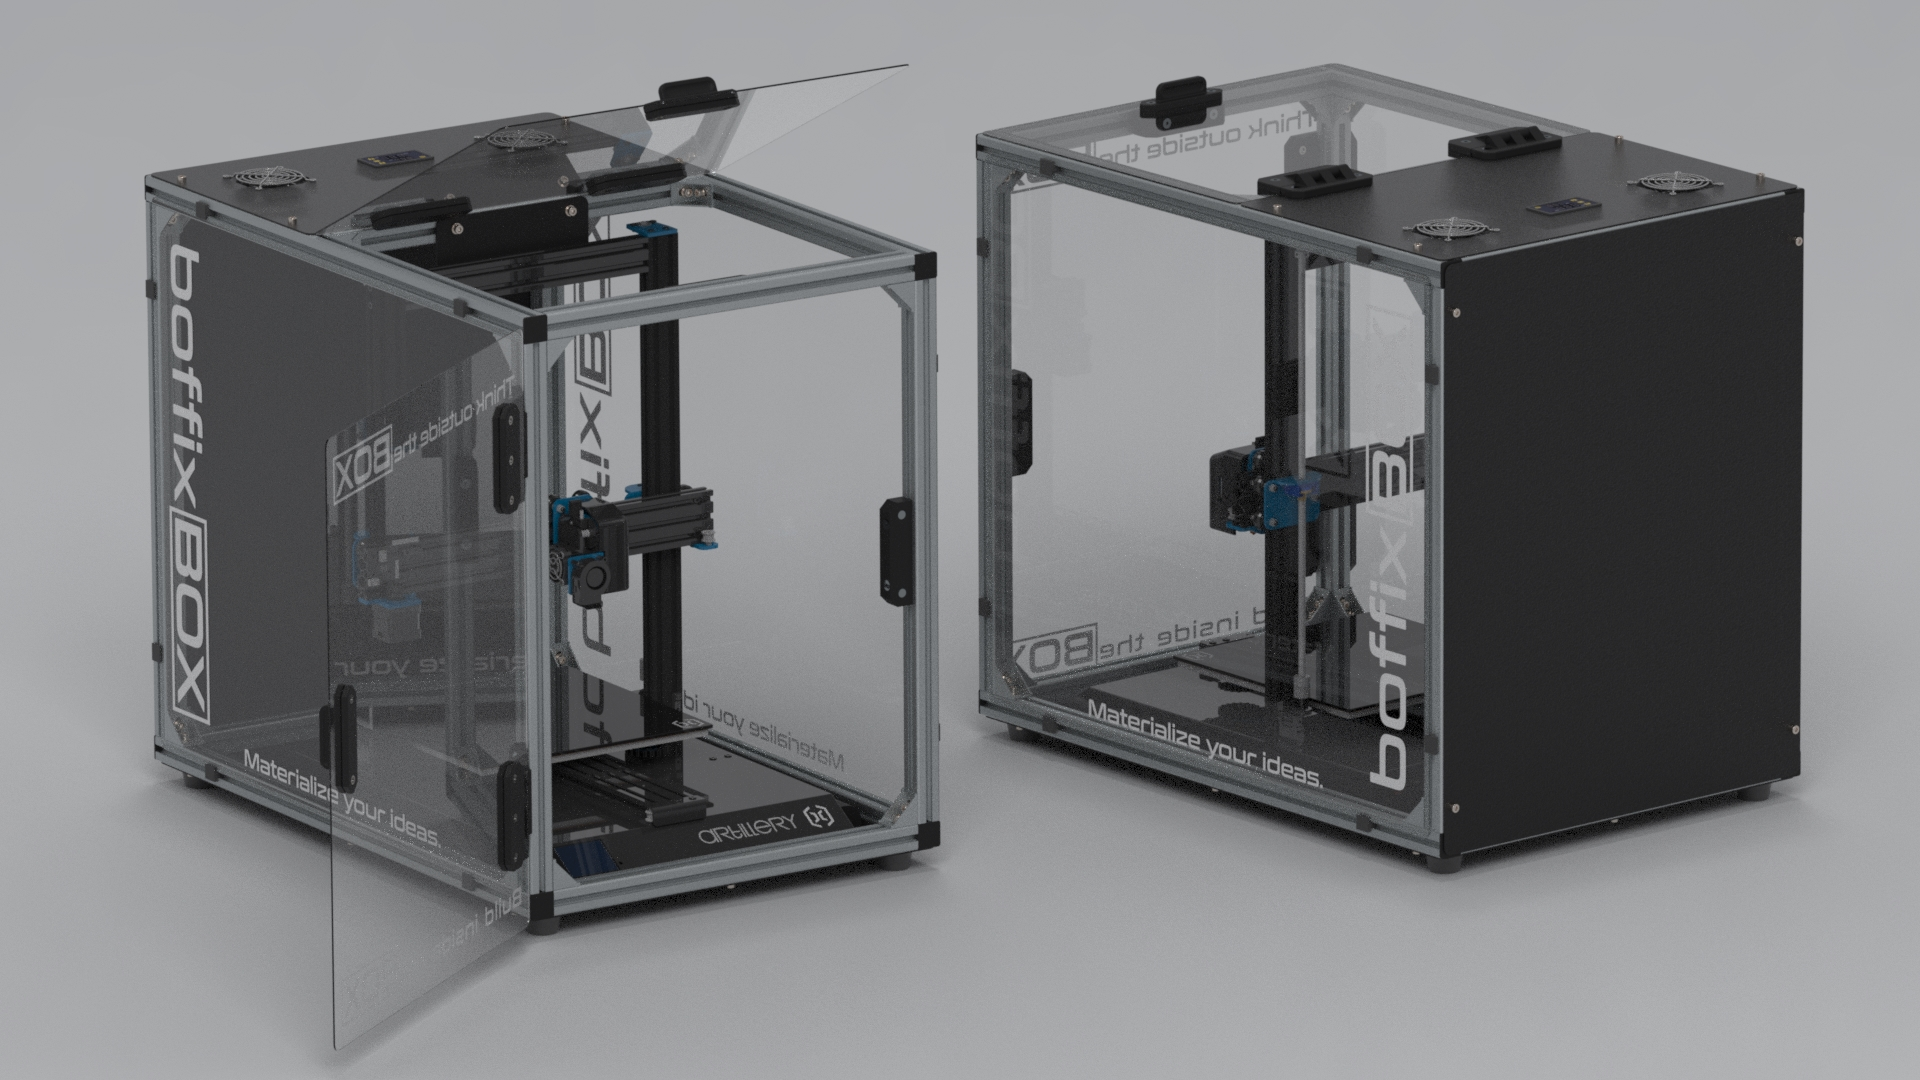 Printer in enclosure.